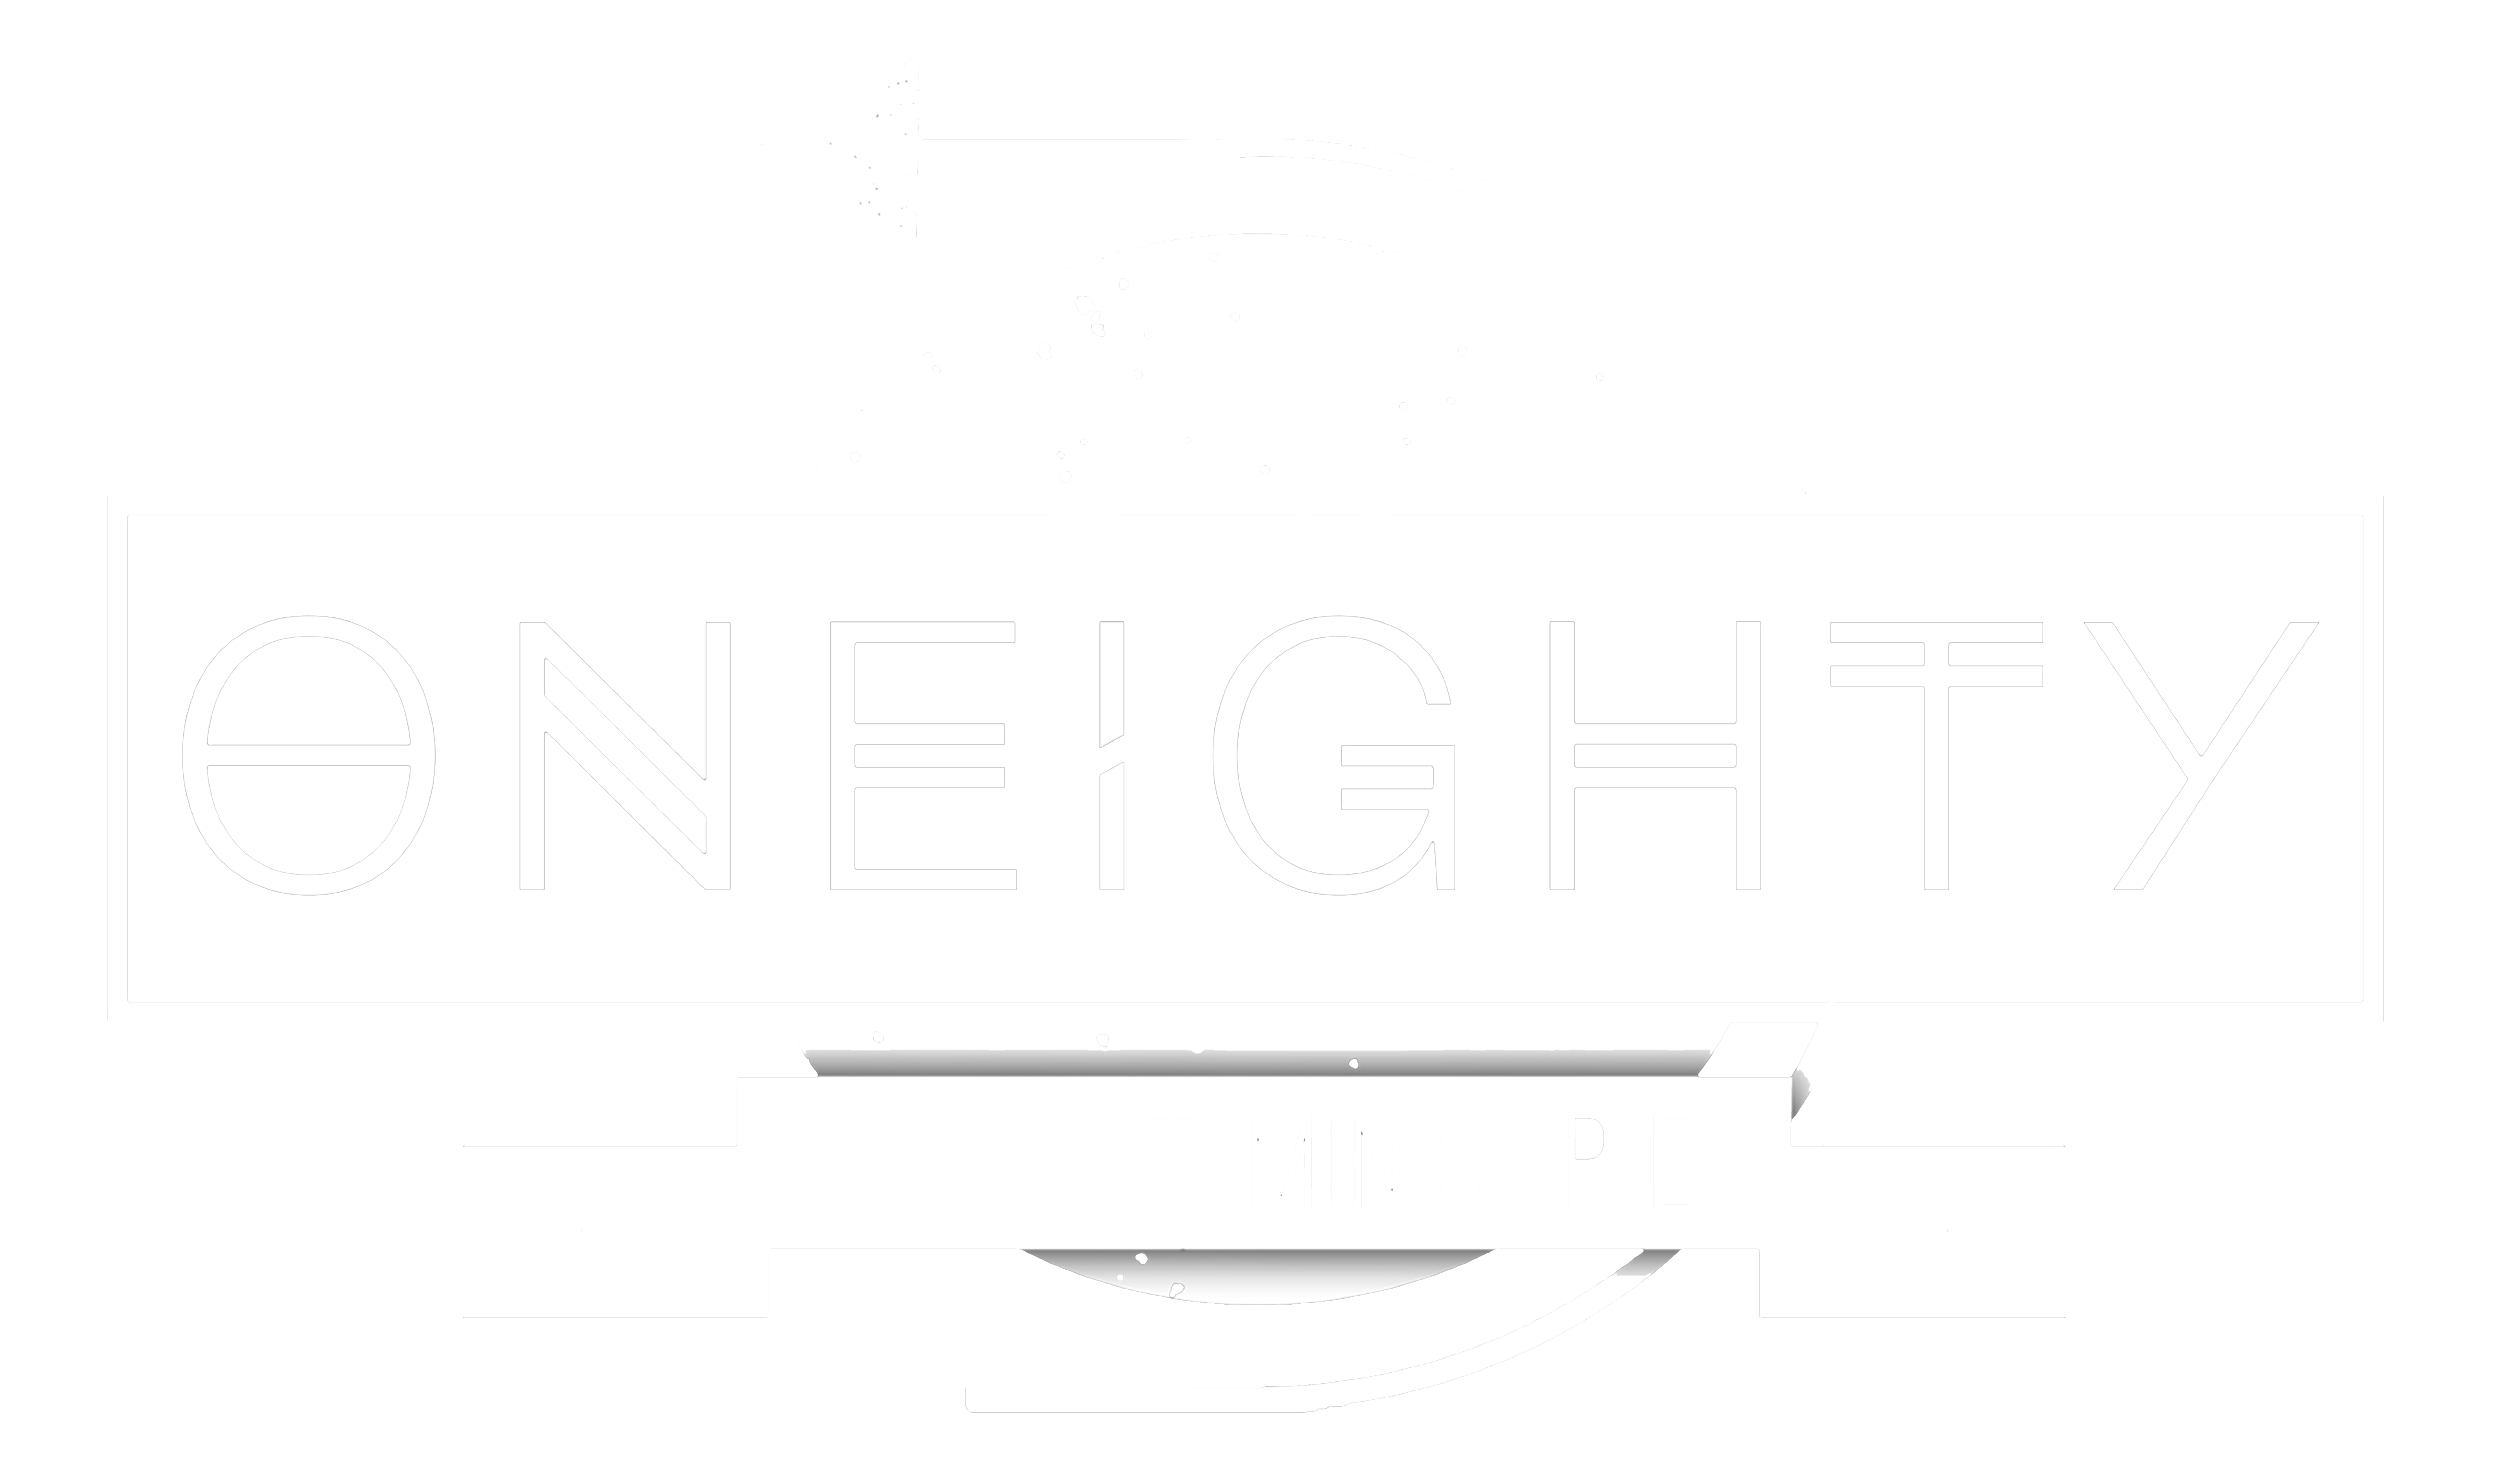 ONEIGHTY STUDENT MINISTRIES   For middle to high school students. Sunday school on Sunday mornings, Oneighty Nights on Wednesdays, and Young Ministers Class on Saturdays.   Sun: 9:45am | Wed: 7pm